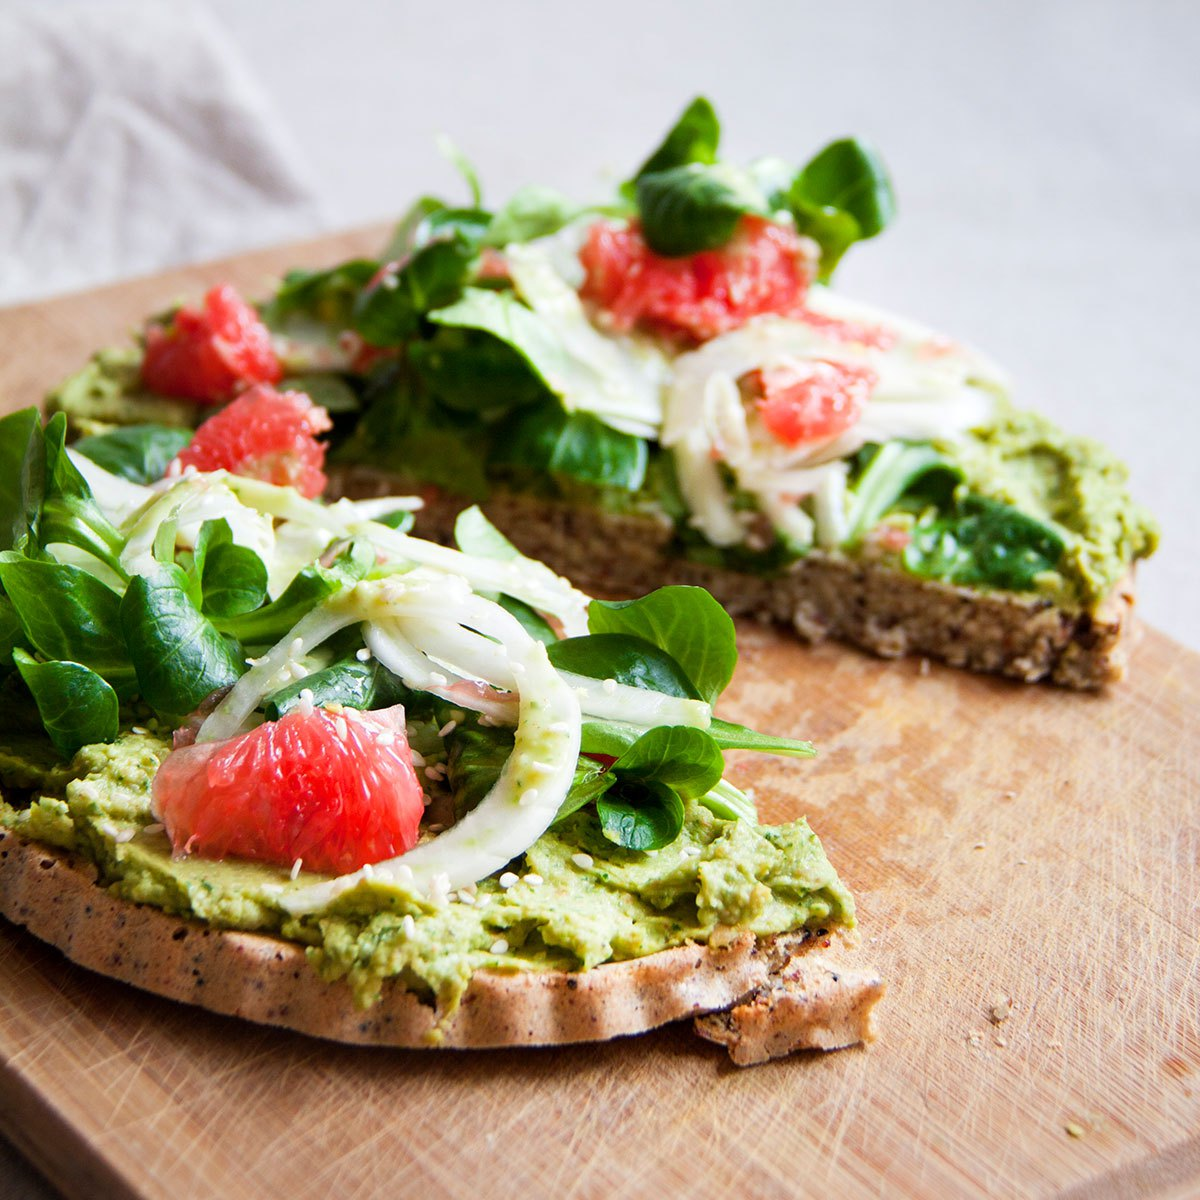 quinoapizza-avocadohummus-grapefruit-vegan-whole-foods-olievrij.jpg